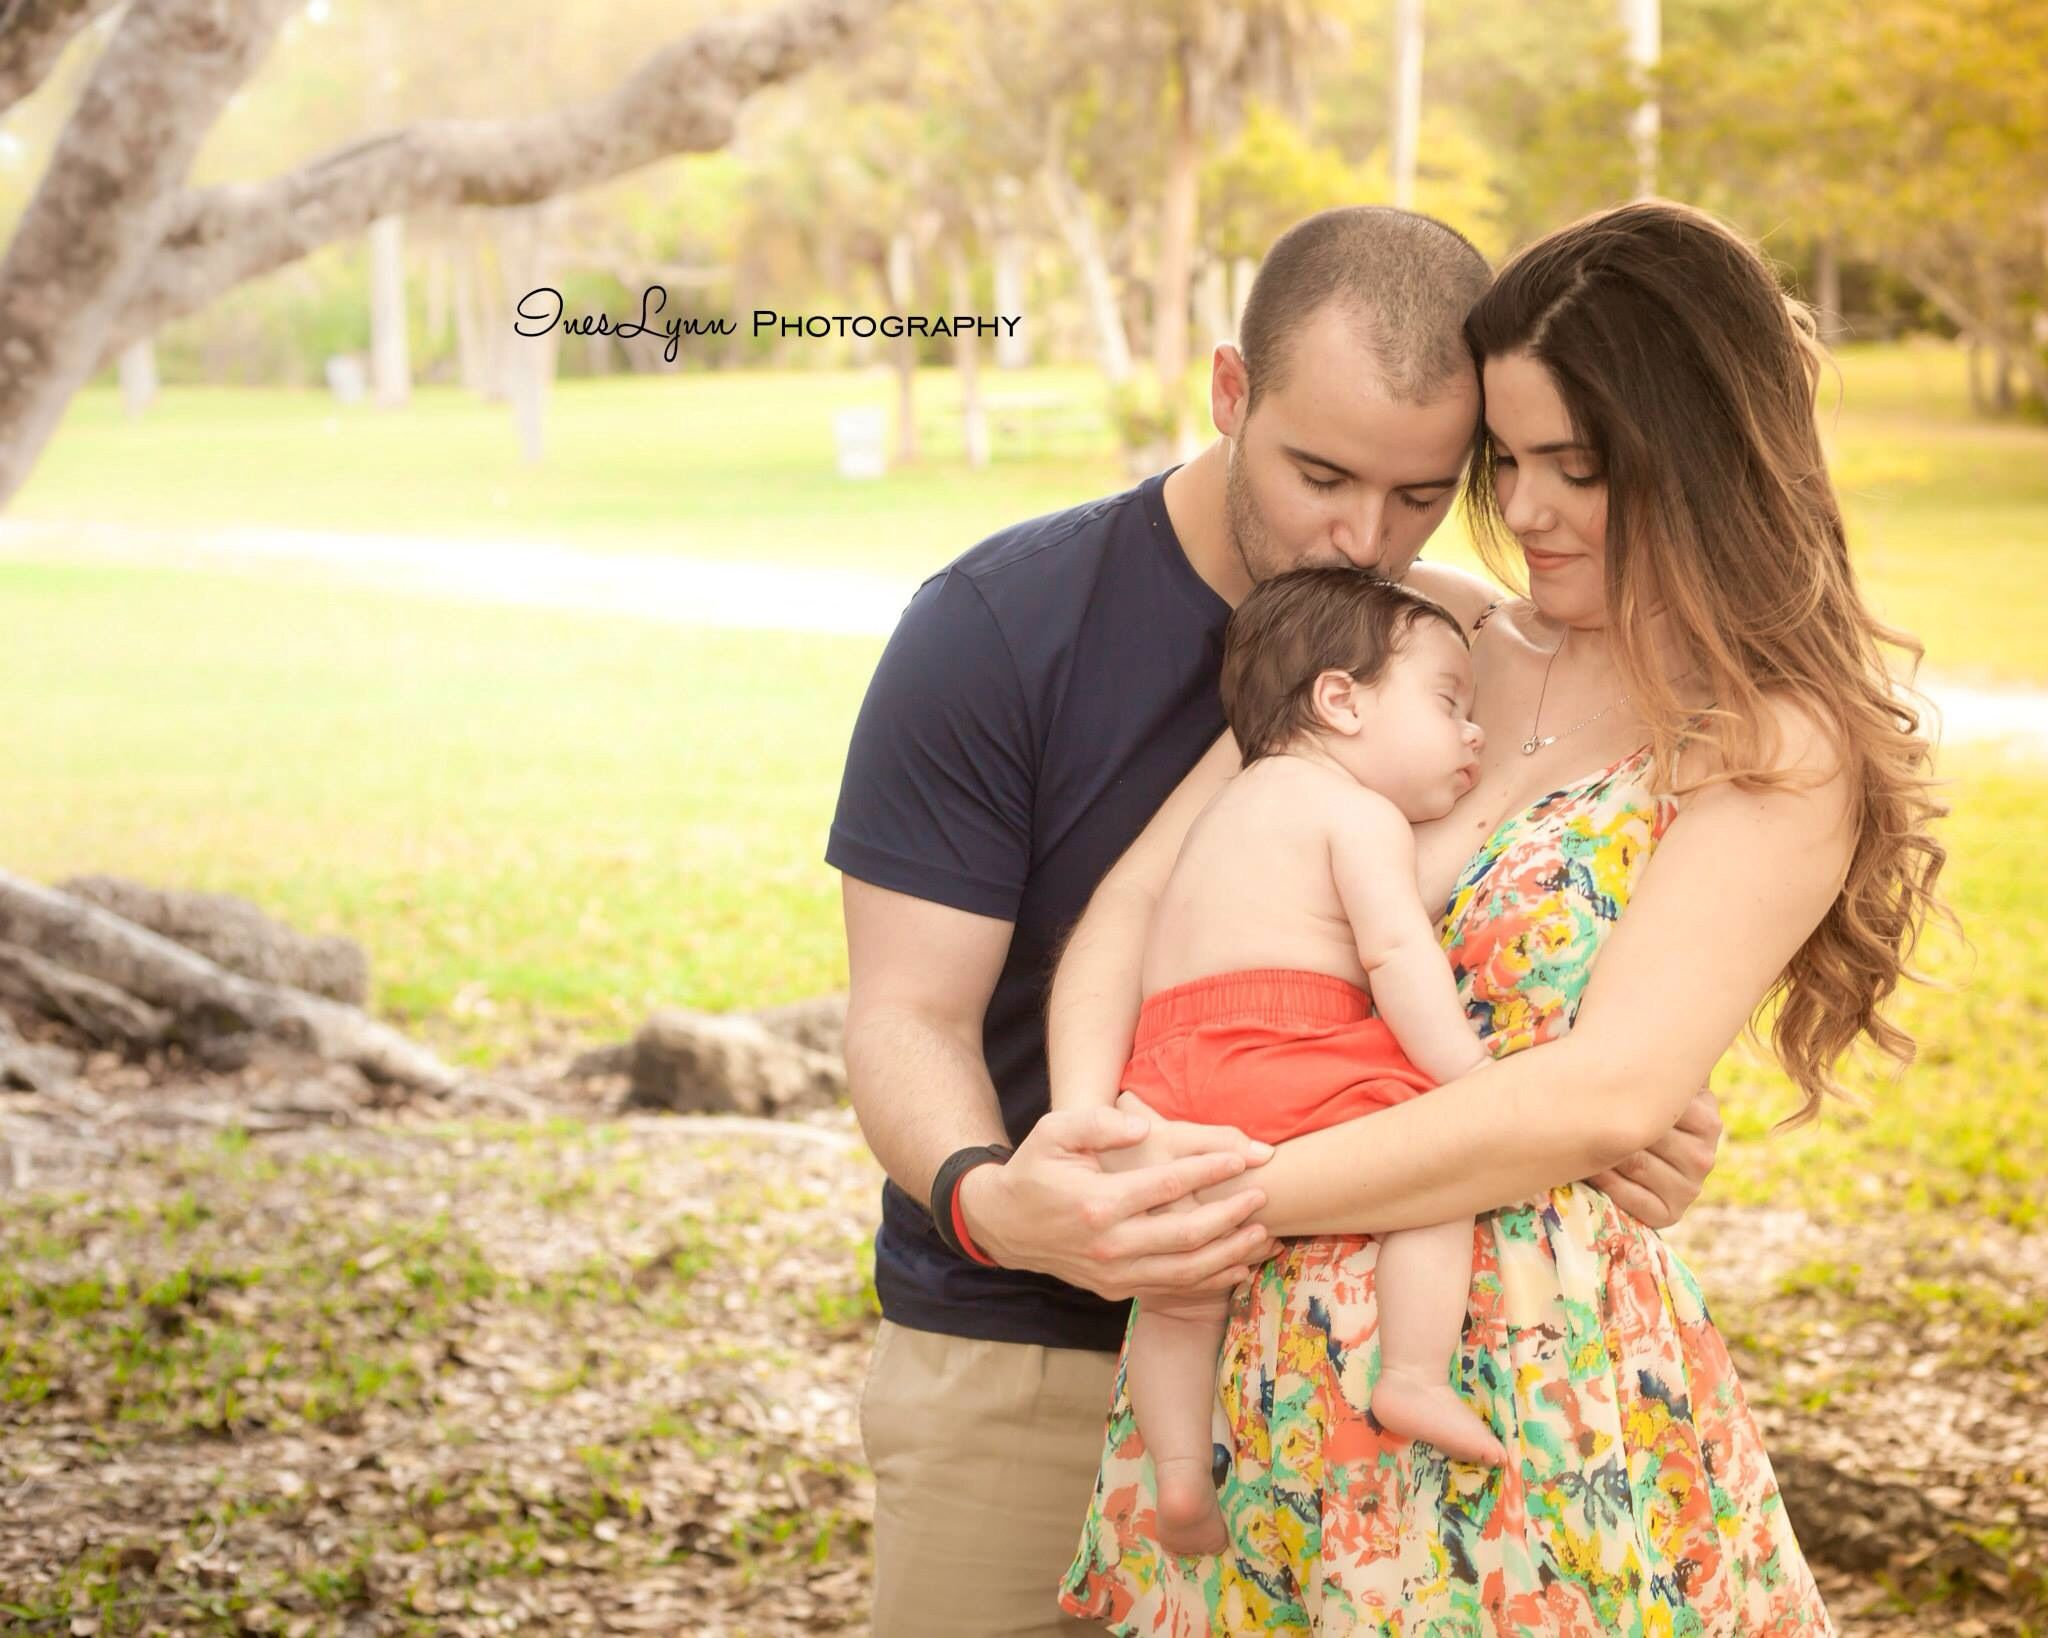 Best canon lens for family photography Tile - Wikipedia